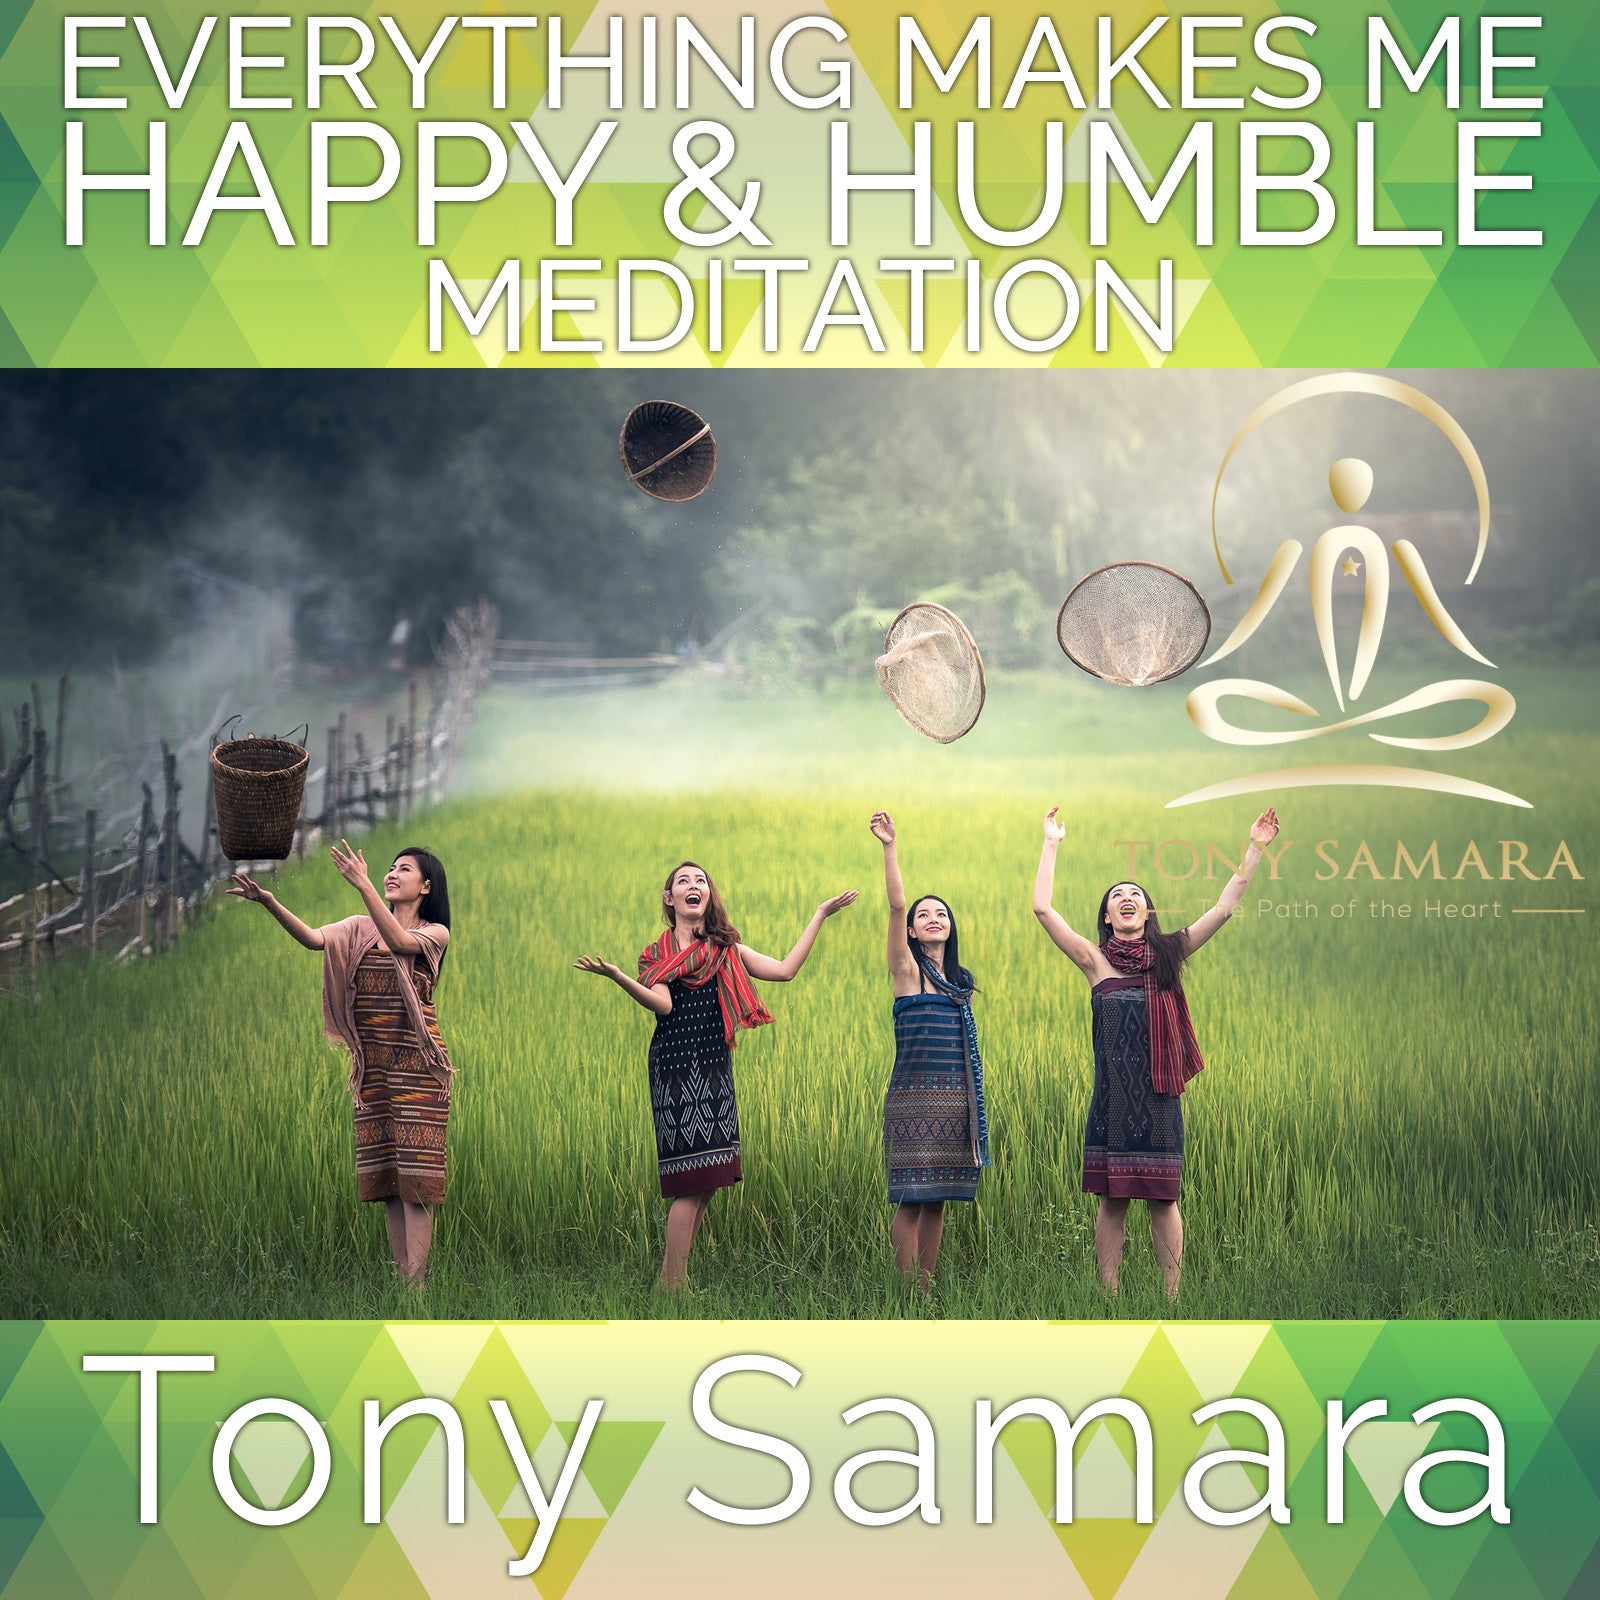 Everything Makes Me Happy & Humble Meditation (MP3 Audio Download) - Tony Samara Meditation